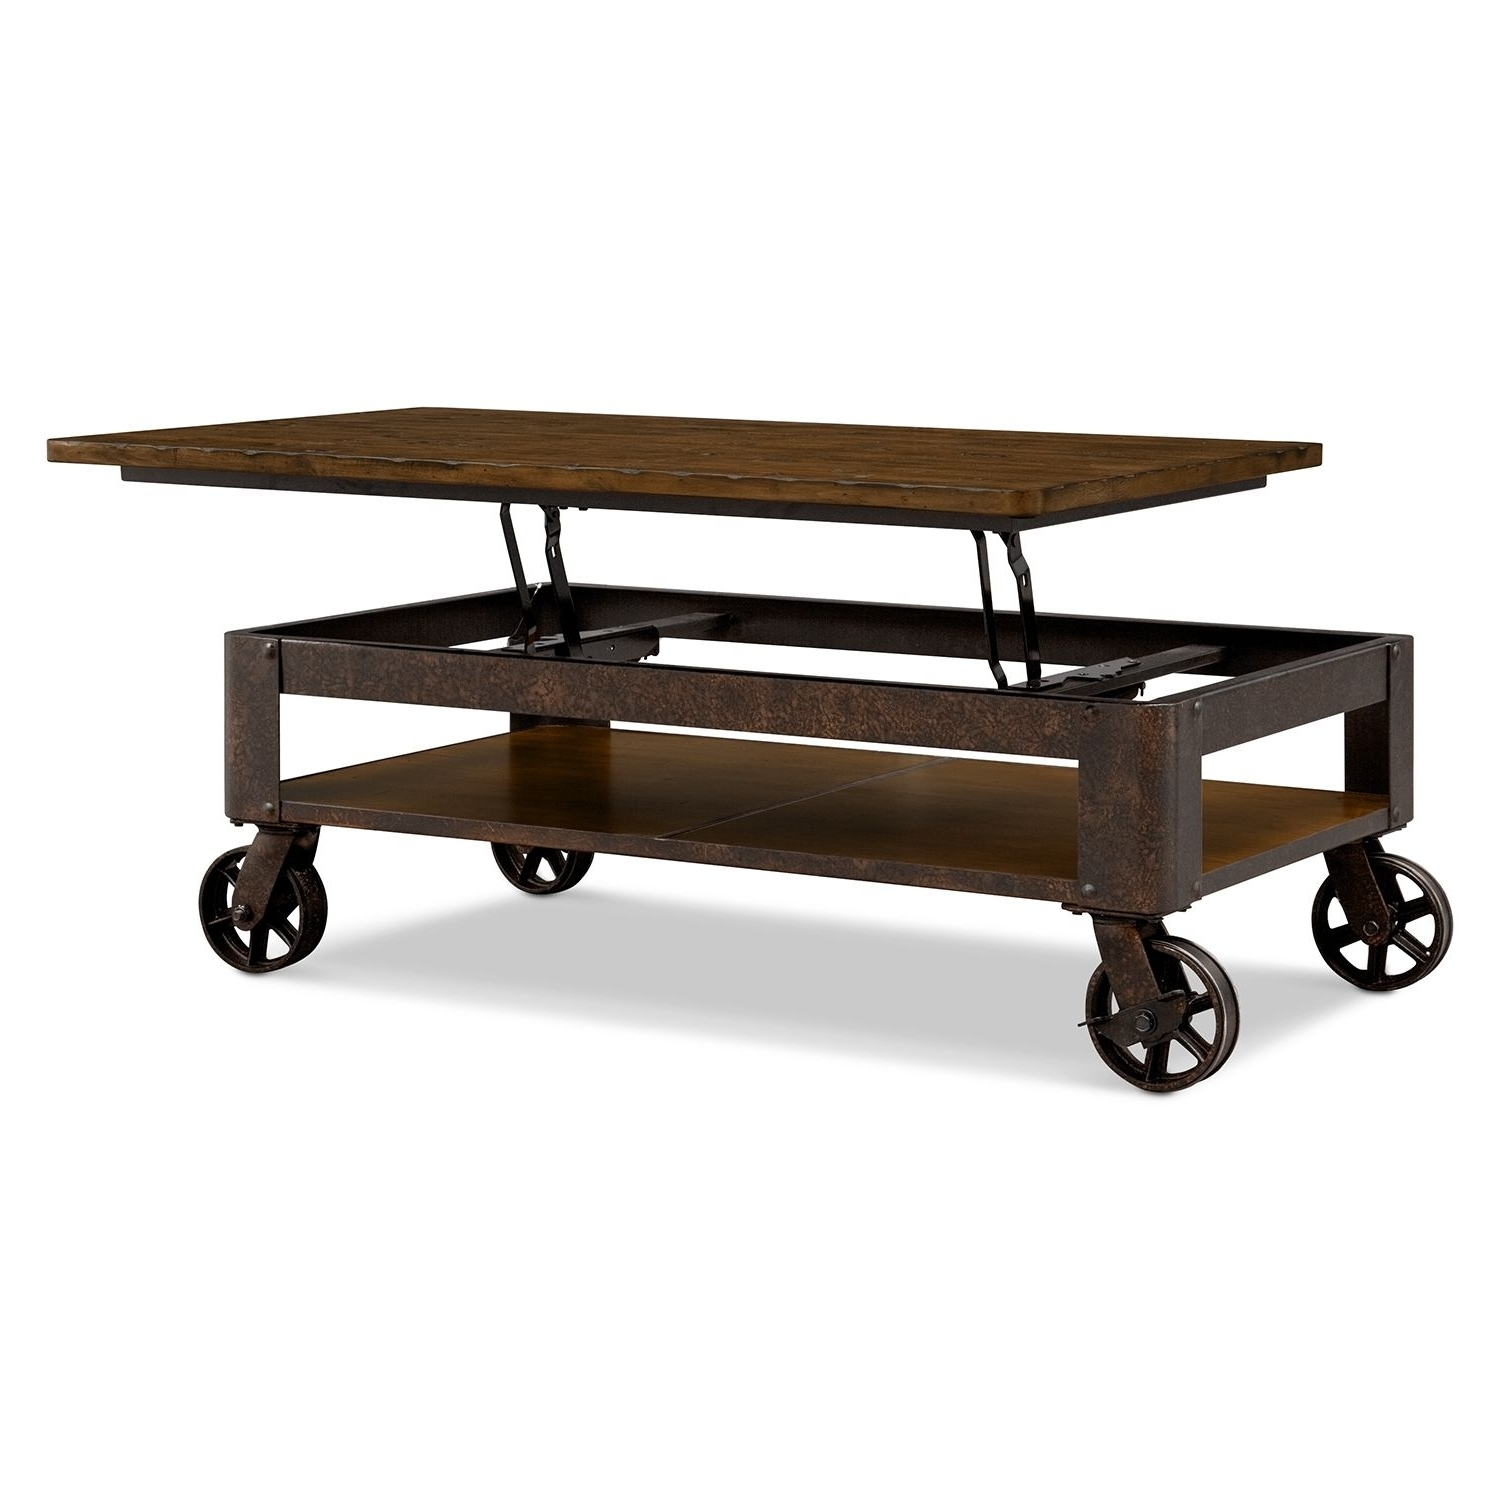 Shortline Lift Top Cocktail Table – Distressed Pine In 2018 Intended For 2018 Market Lift Top Cocktail Tables (View 15 of 20)